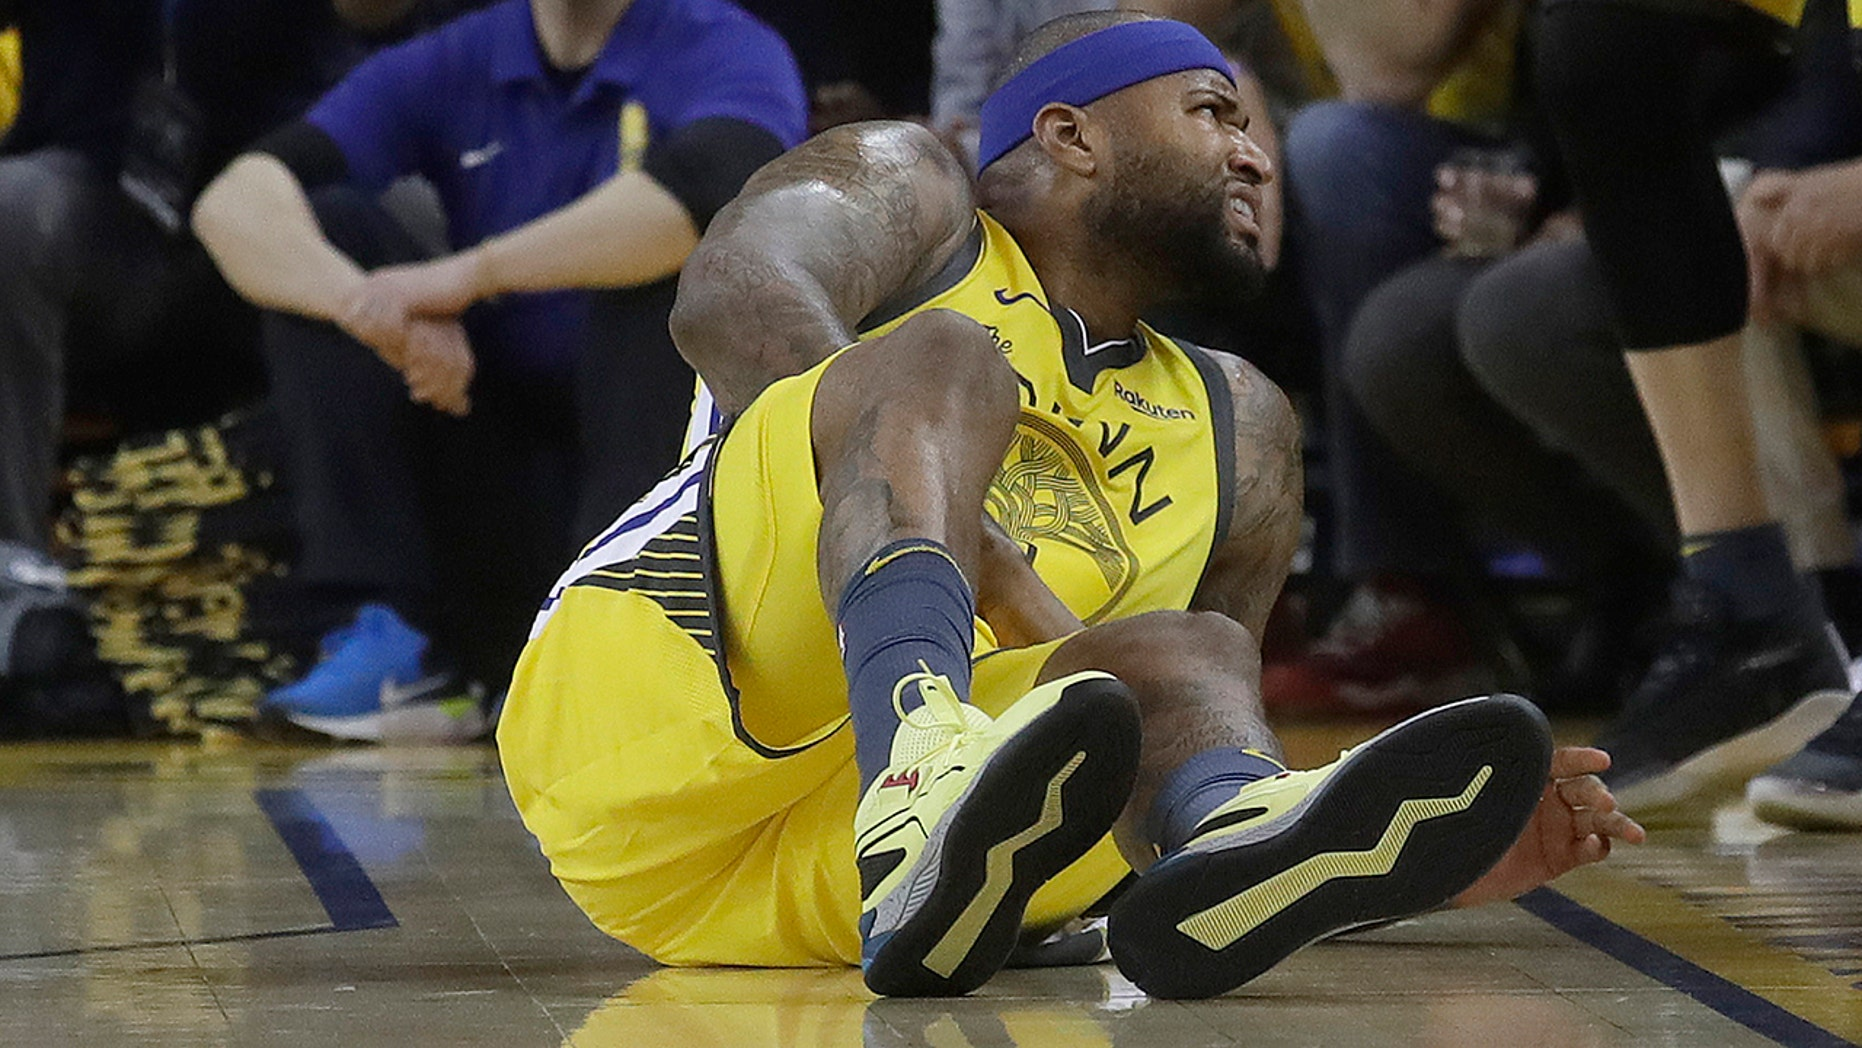 Golden State Warriors center DeMarcus Cousins reacts after falling to the floor during the first half of Game 2 of a first-round NBA basketball playoff series against the Los Angeles Clippers in Oakland, Calif., on Monday. (AP Photo/Jeff Chiu)